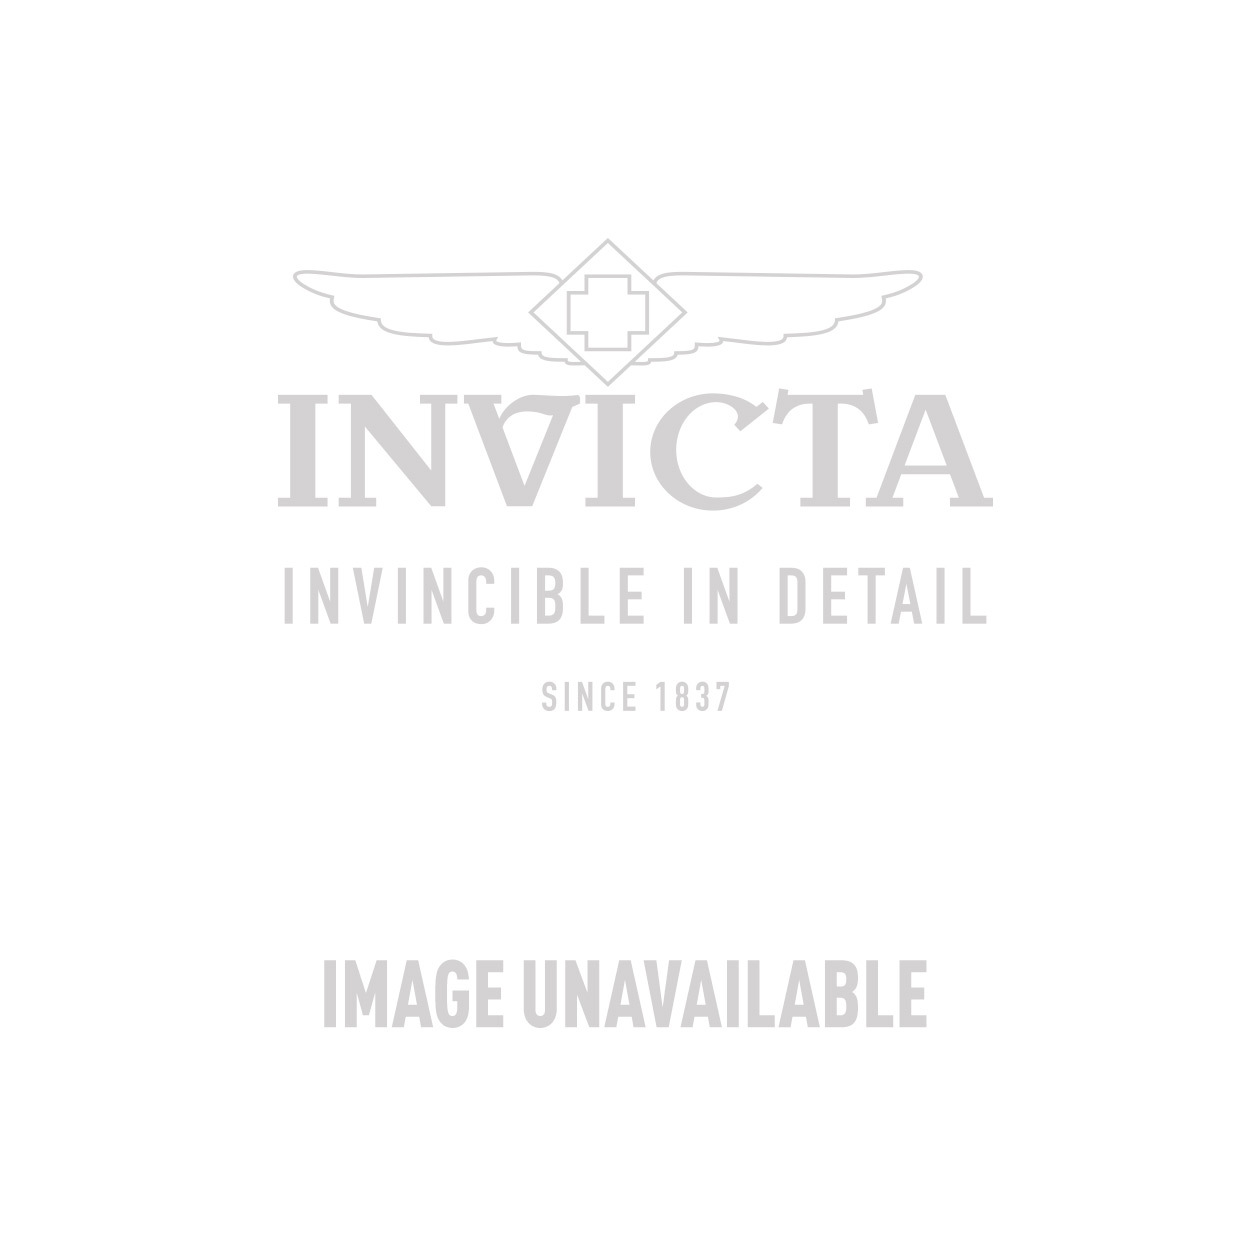 Invicta Sea Base Quartz Watch - Stainless Steel case Stainless Steel band - Model 20388